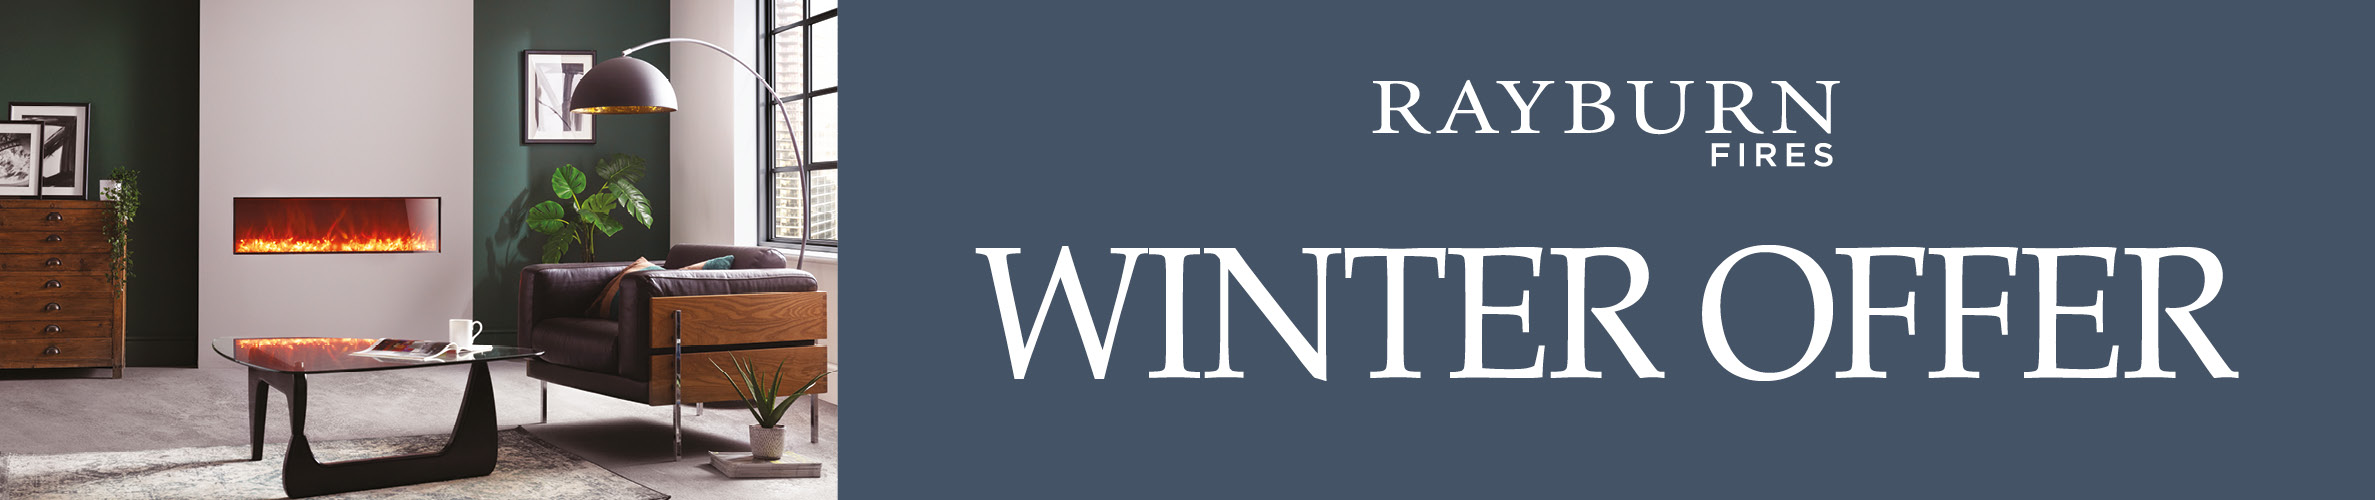 Rayburn Fires Winter Offer